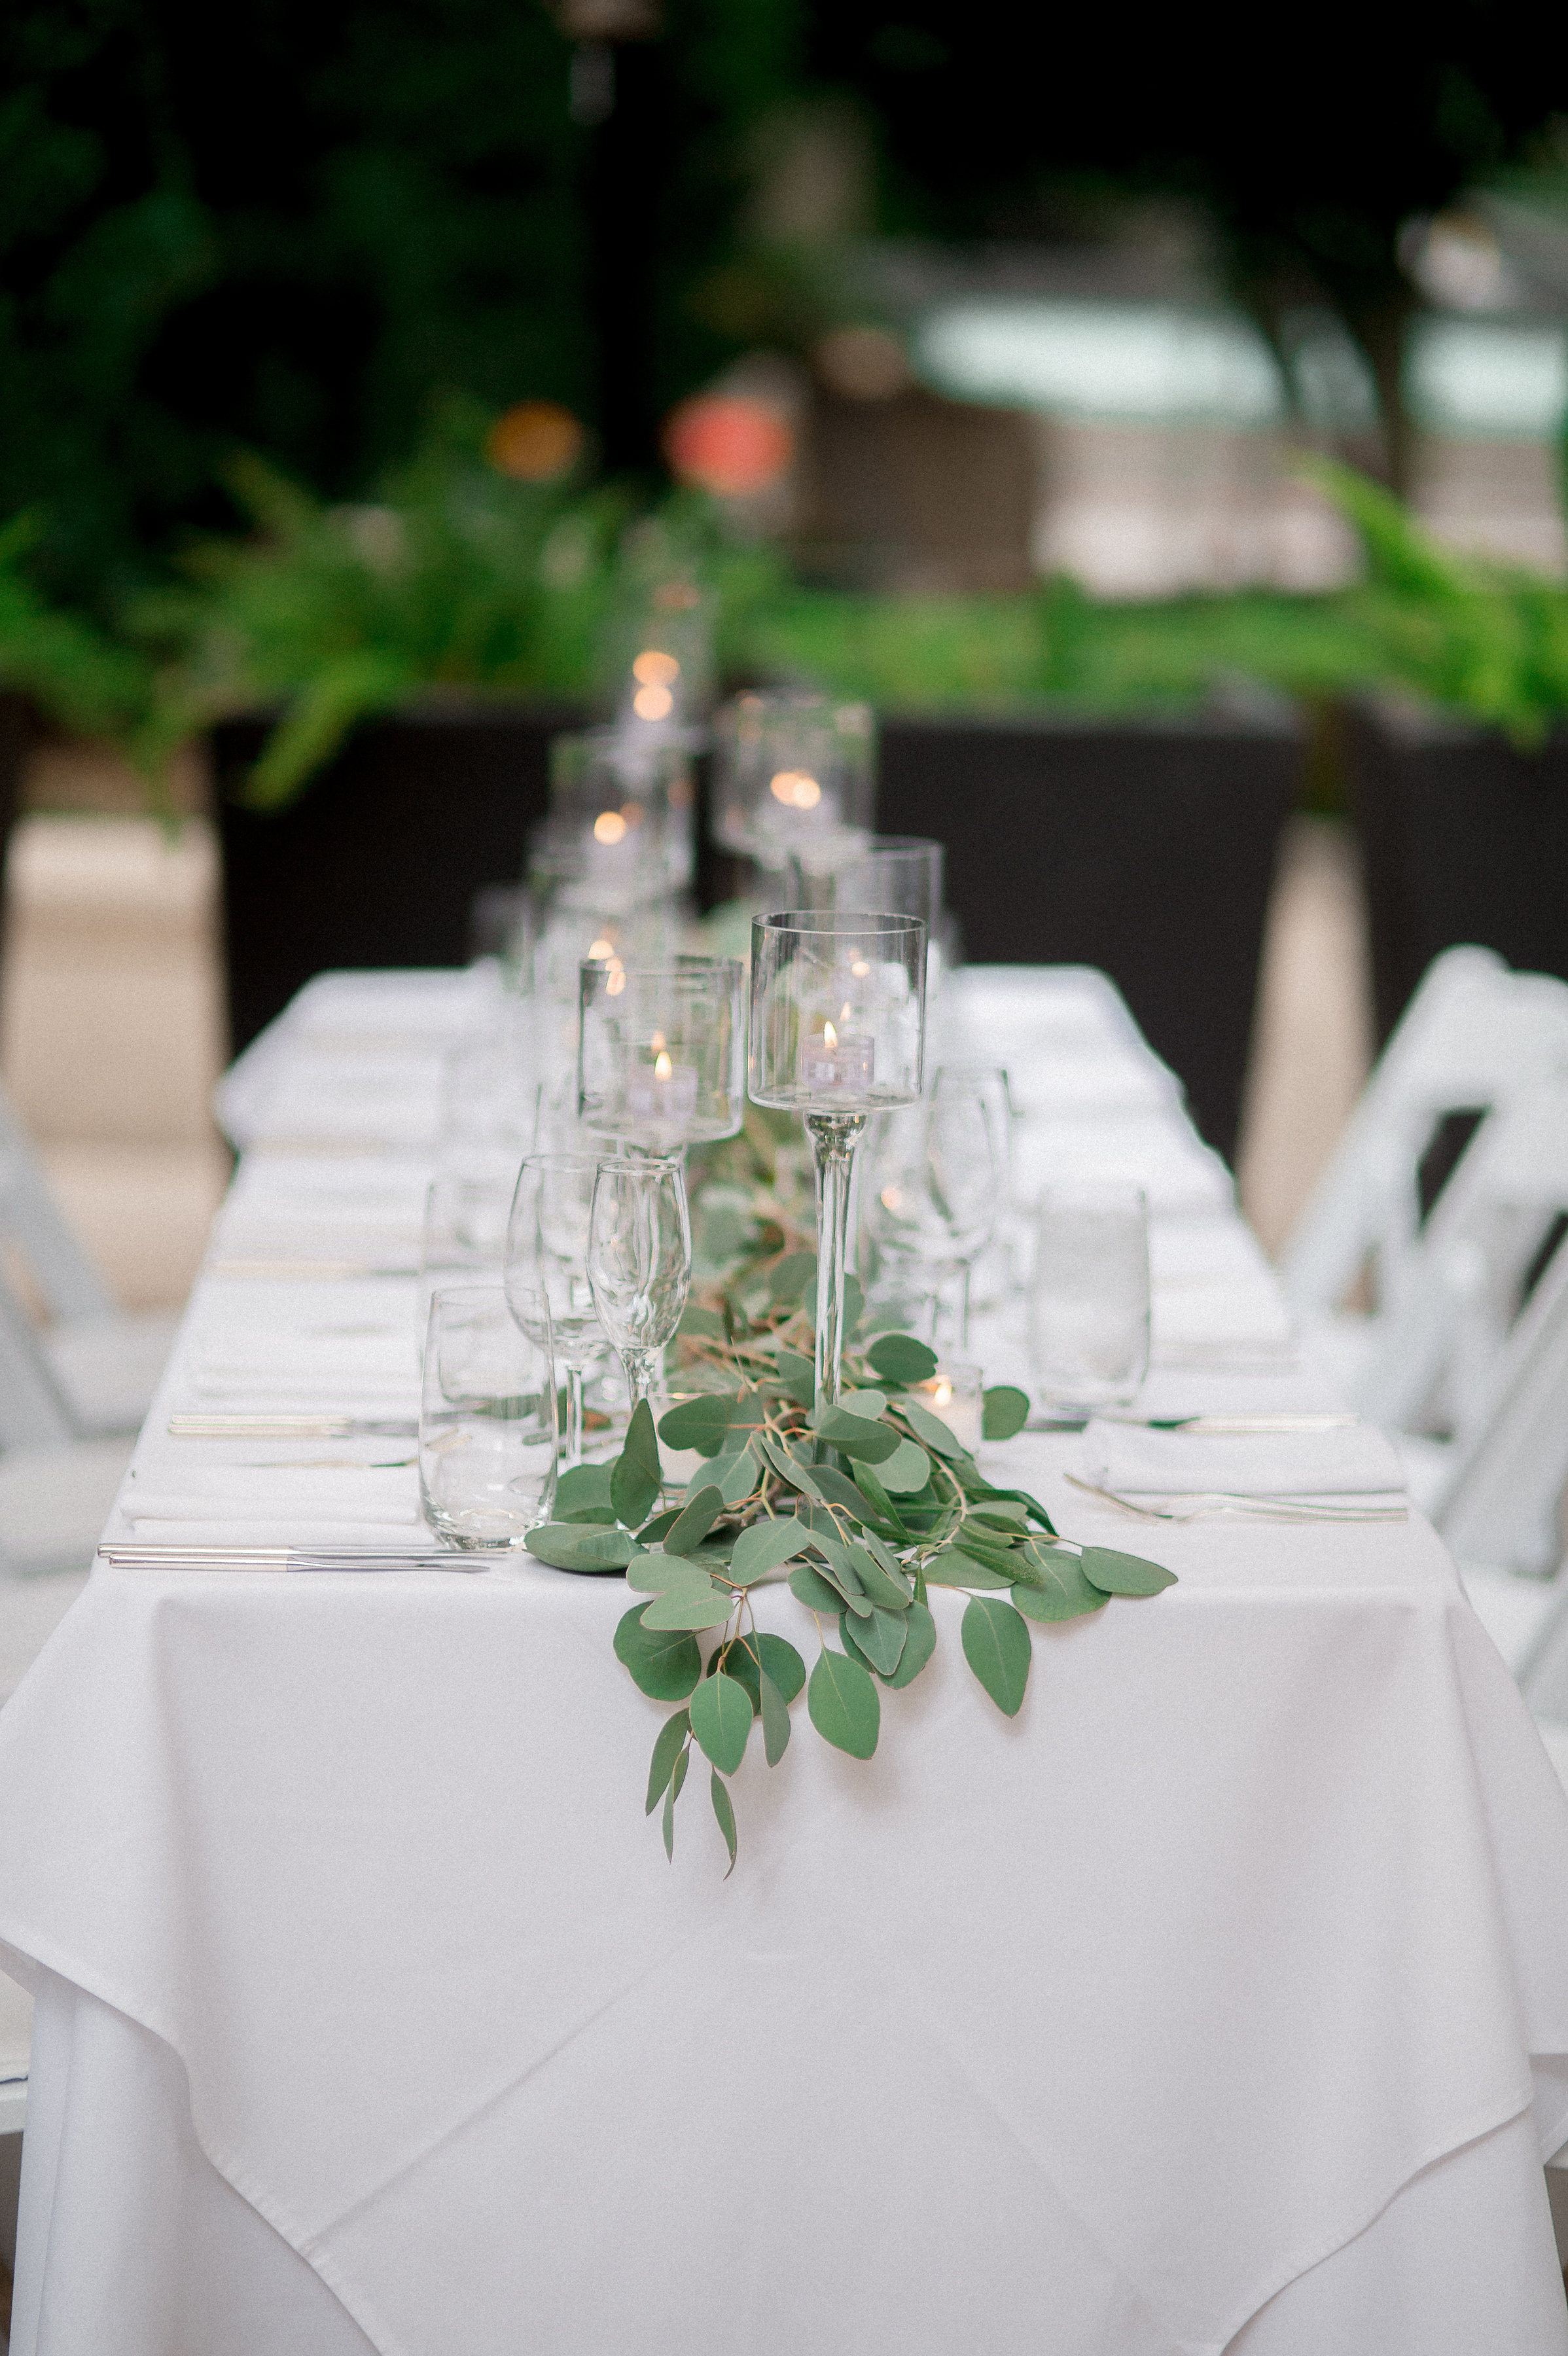 socal-wedding-consultant-best-wedding-planners-in-southern-california-cafe-pinot-wedding-planner54.jpg